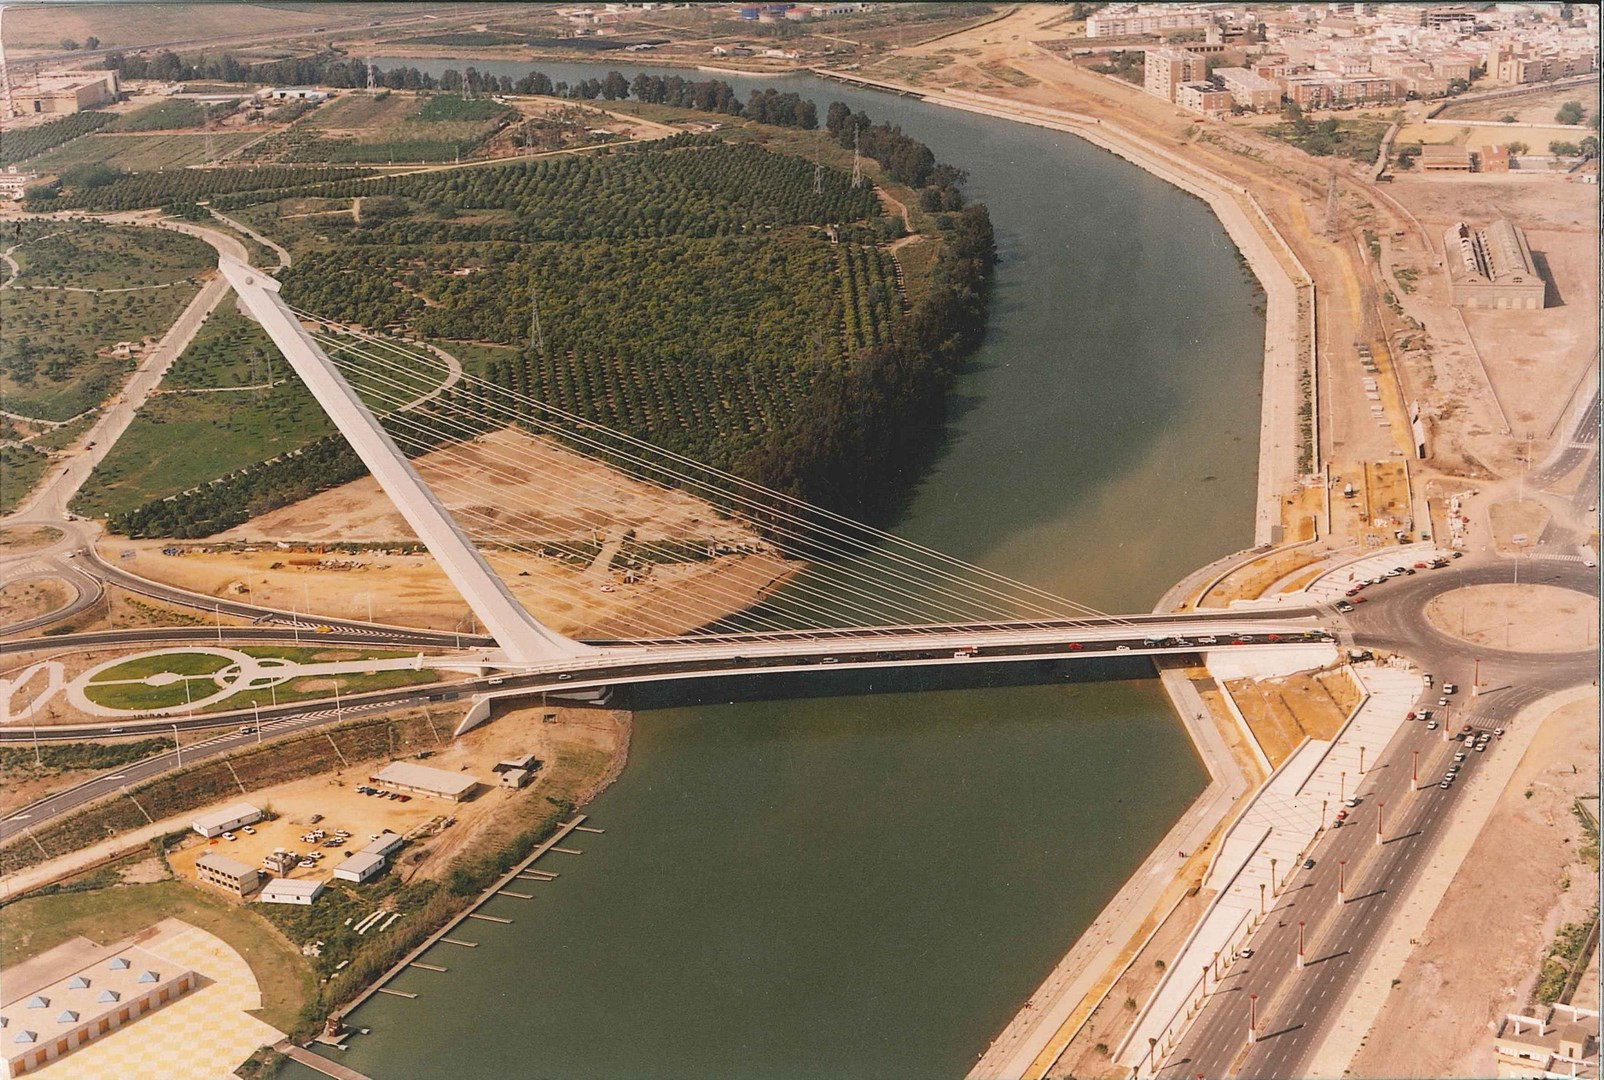 Aerial view of the Alamillo Bridge